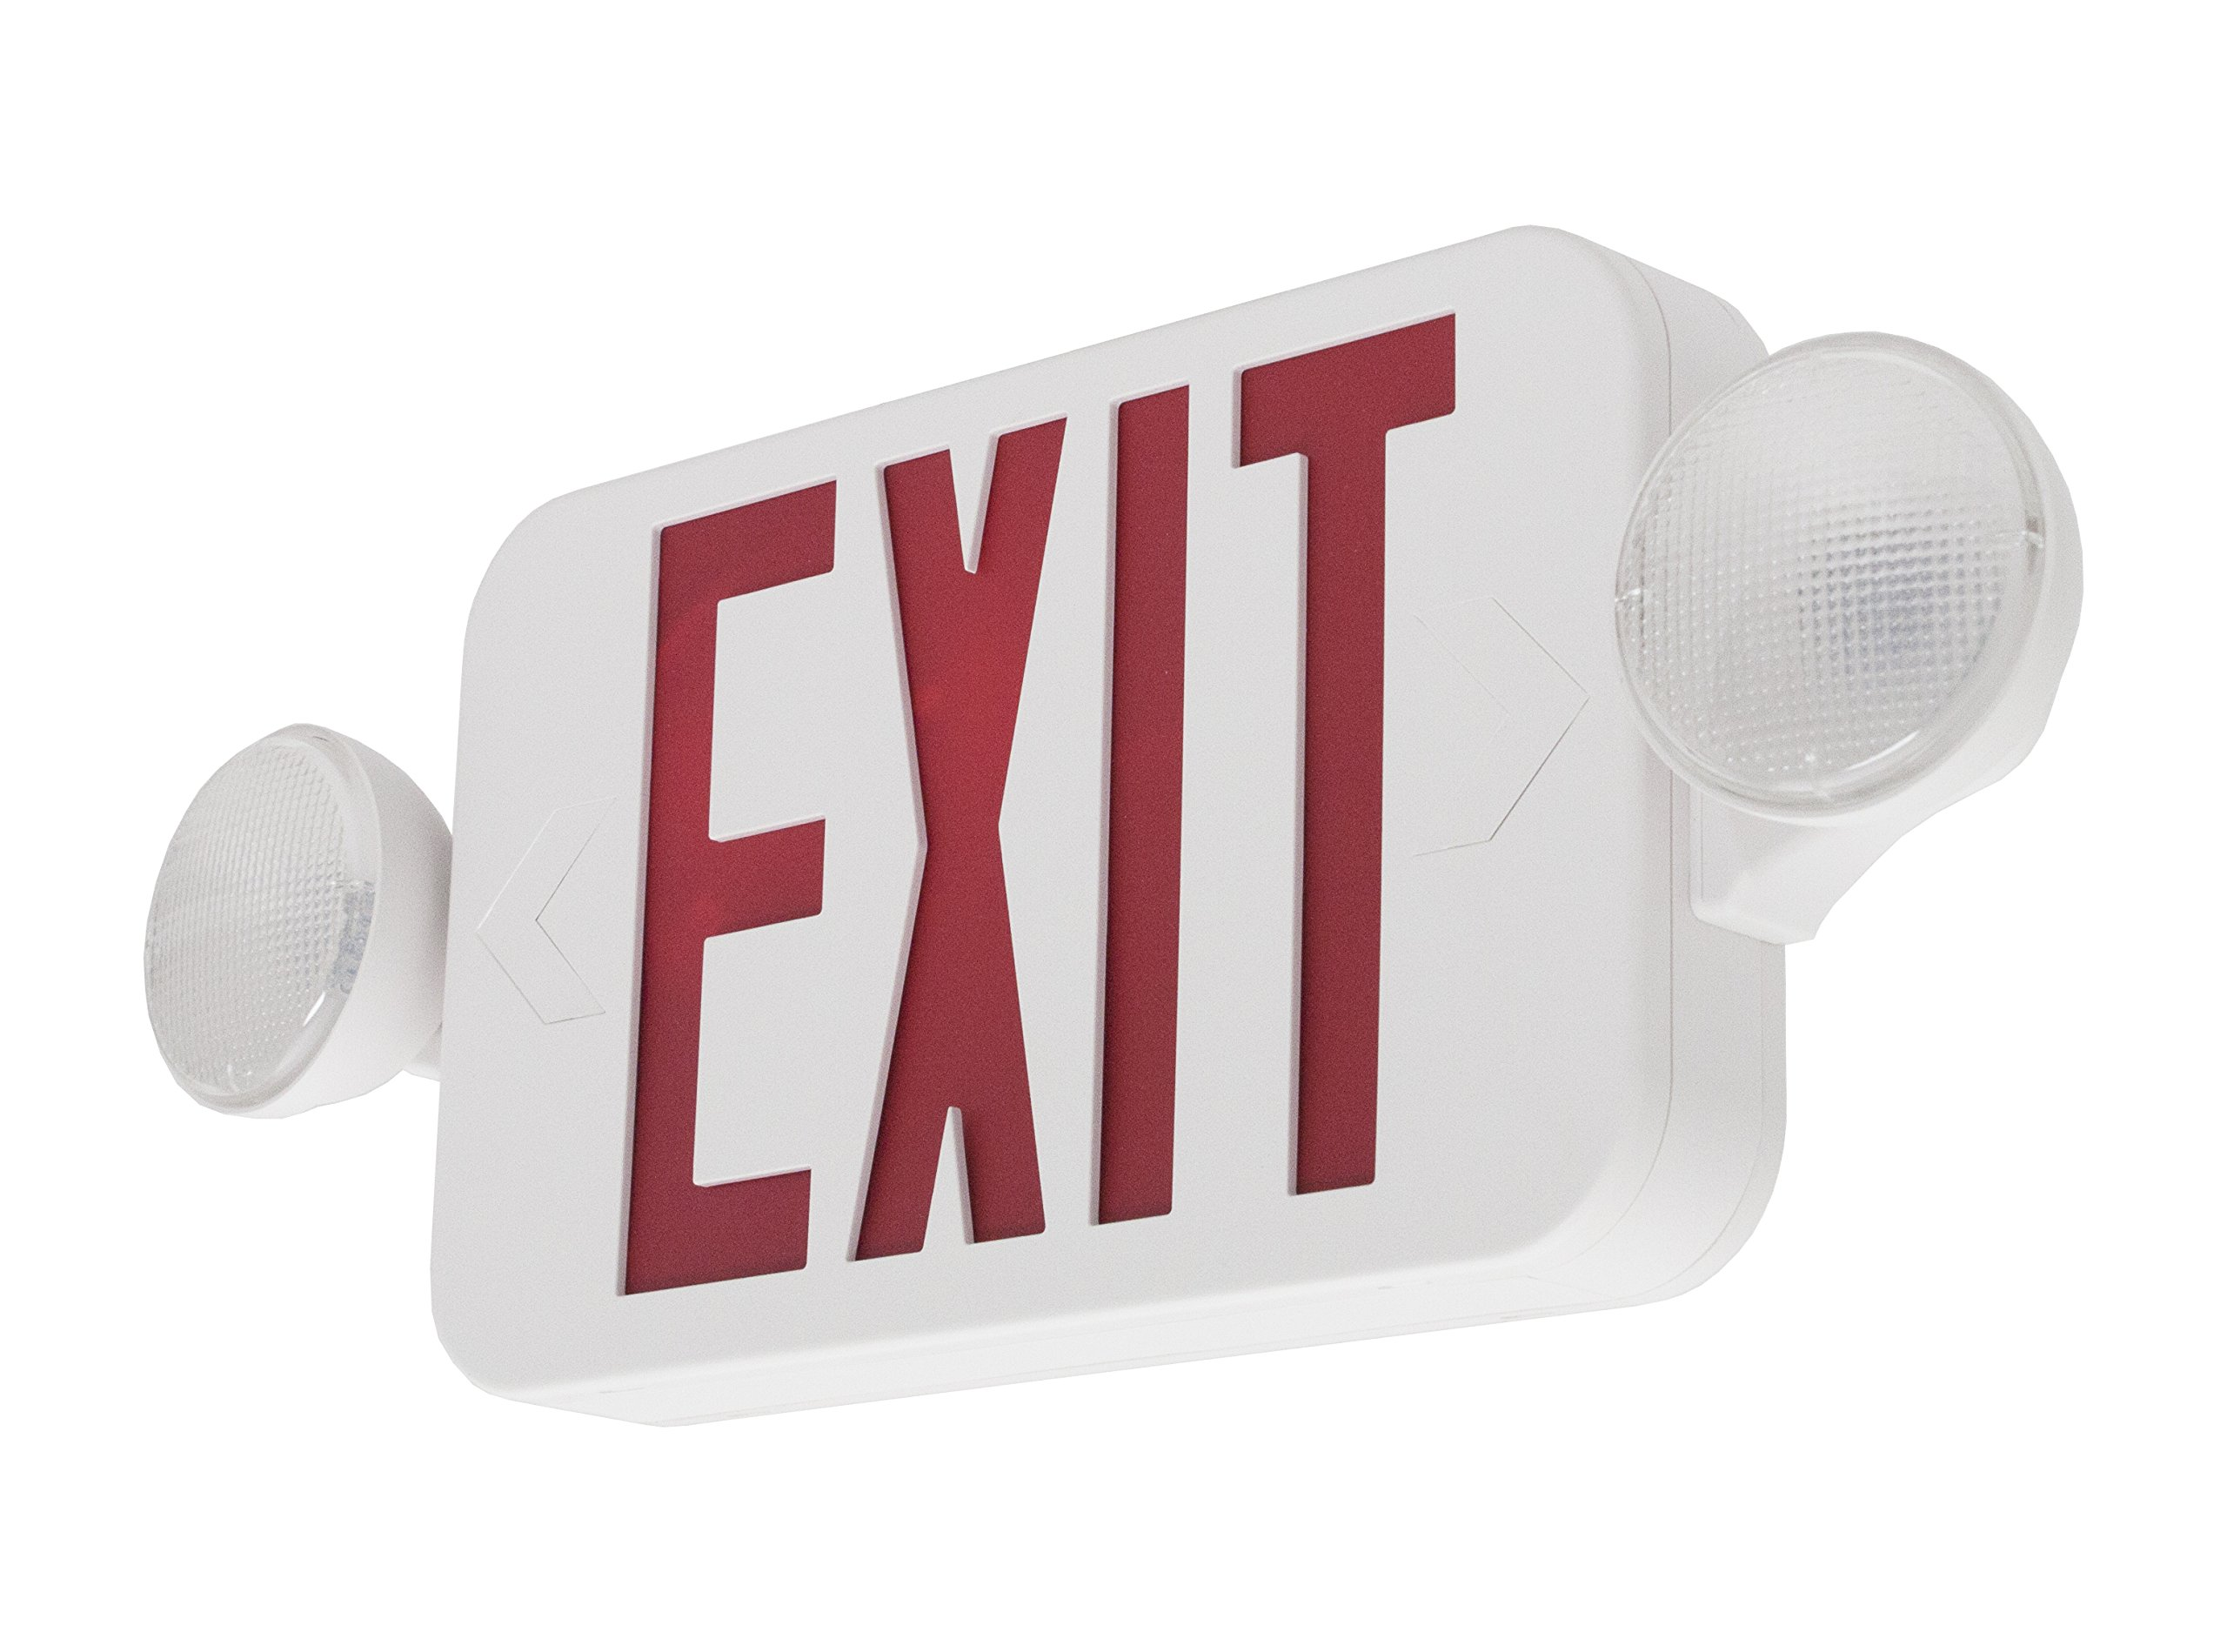 LFI Lights - UL Certified - Hardwired Red Compact Combo Exit Sign Emergency Egress Light - COMBORJR